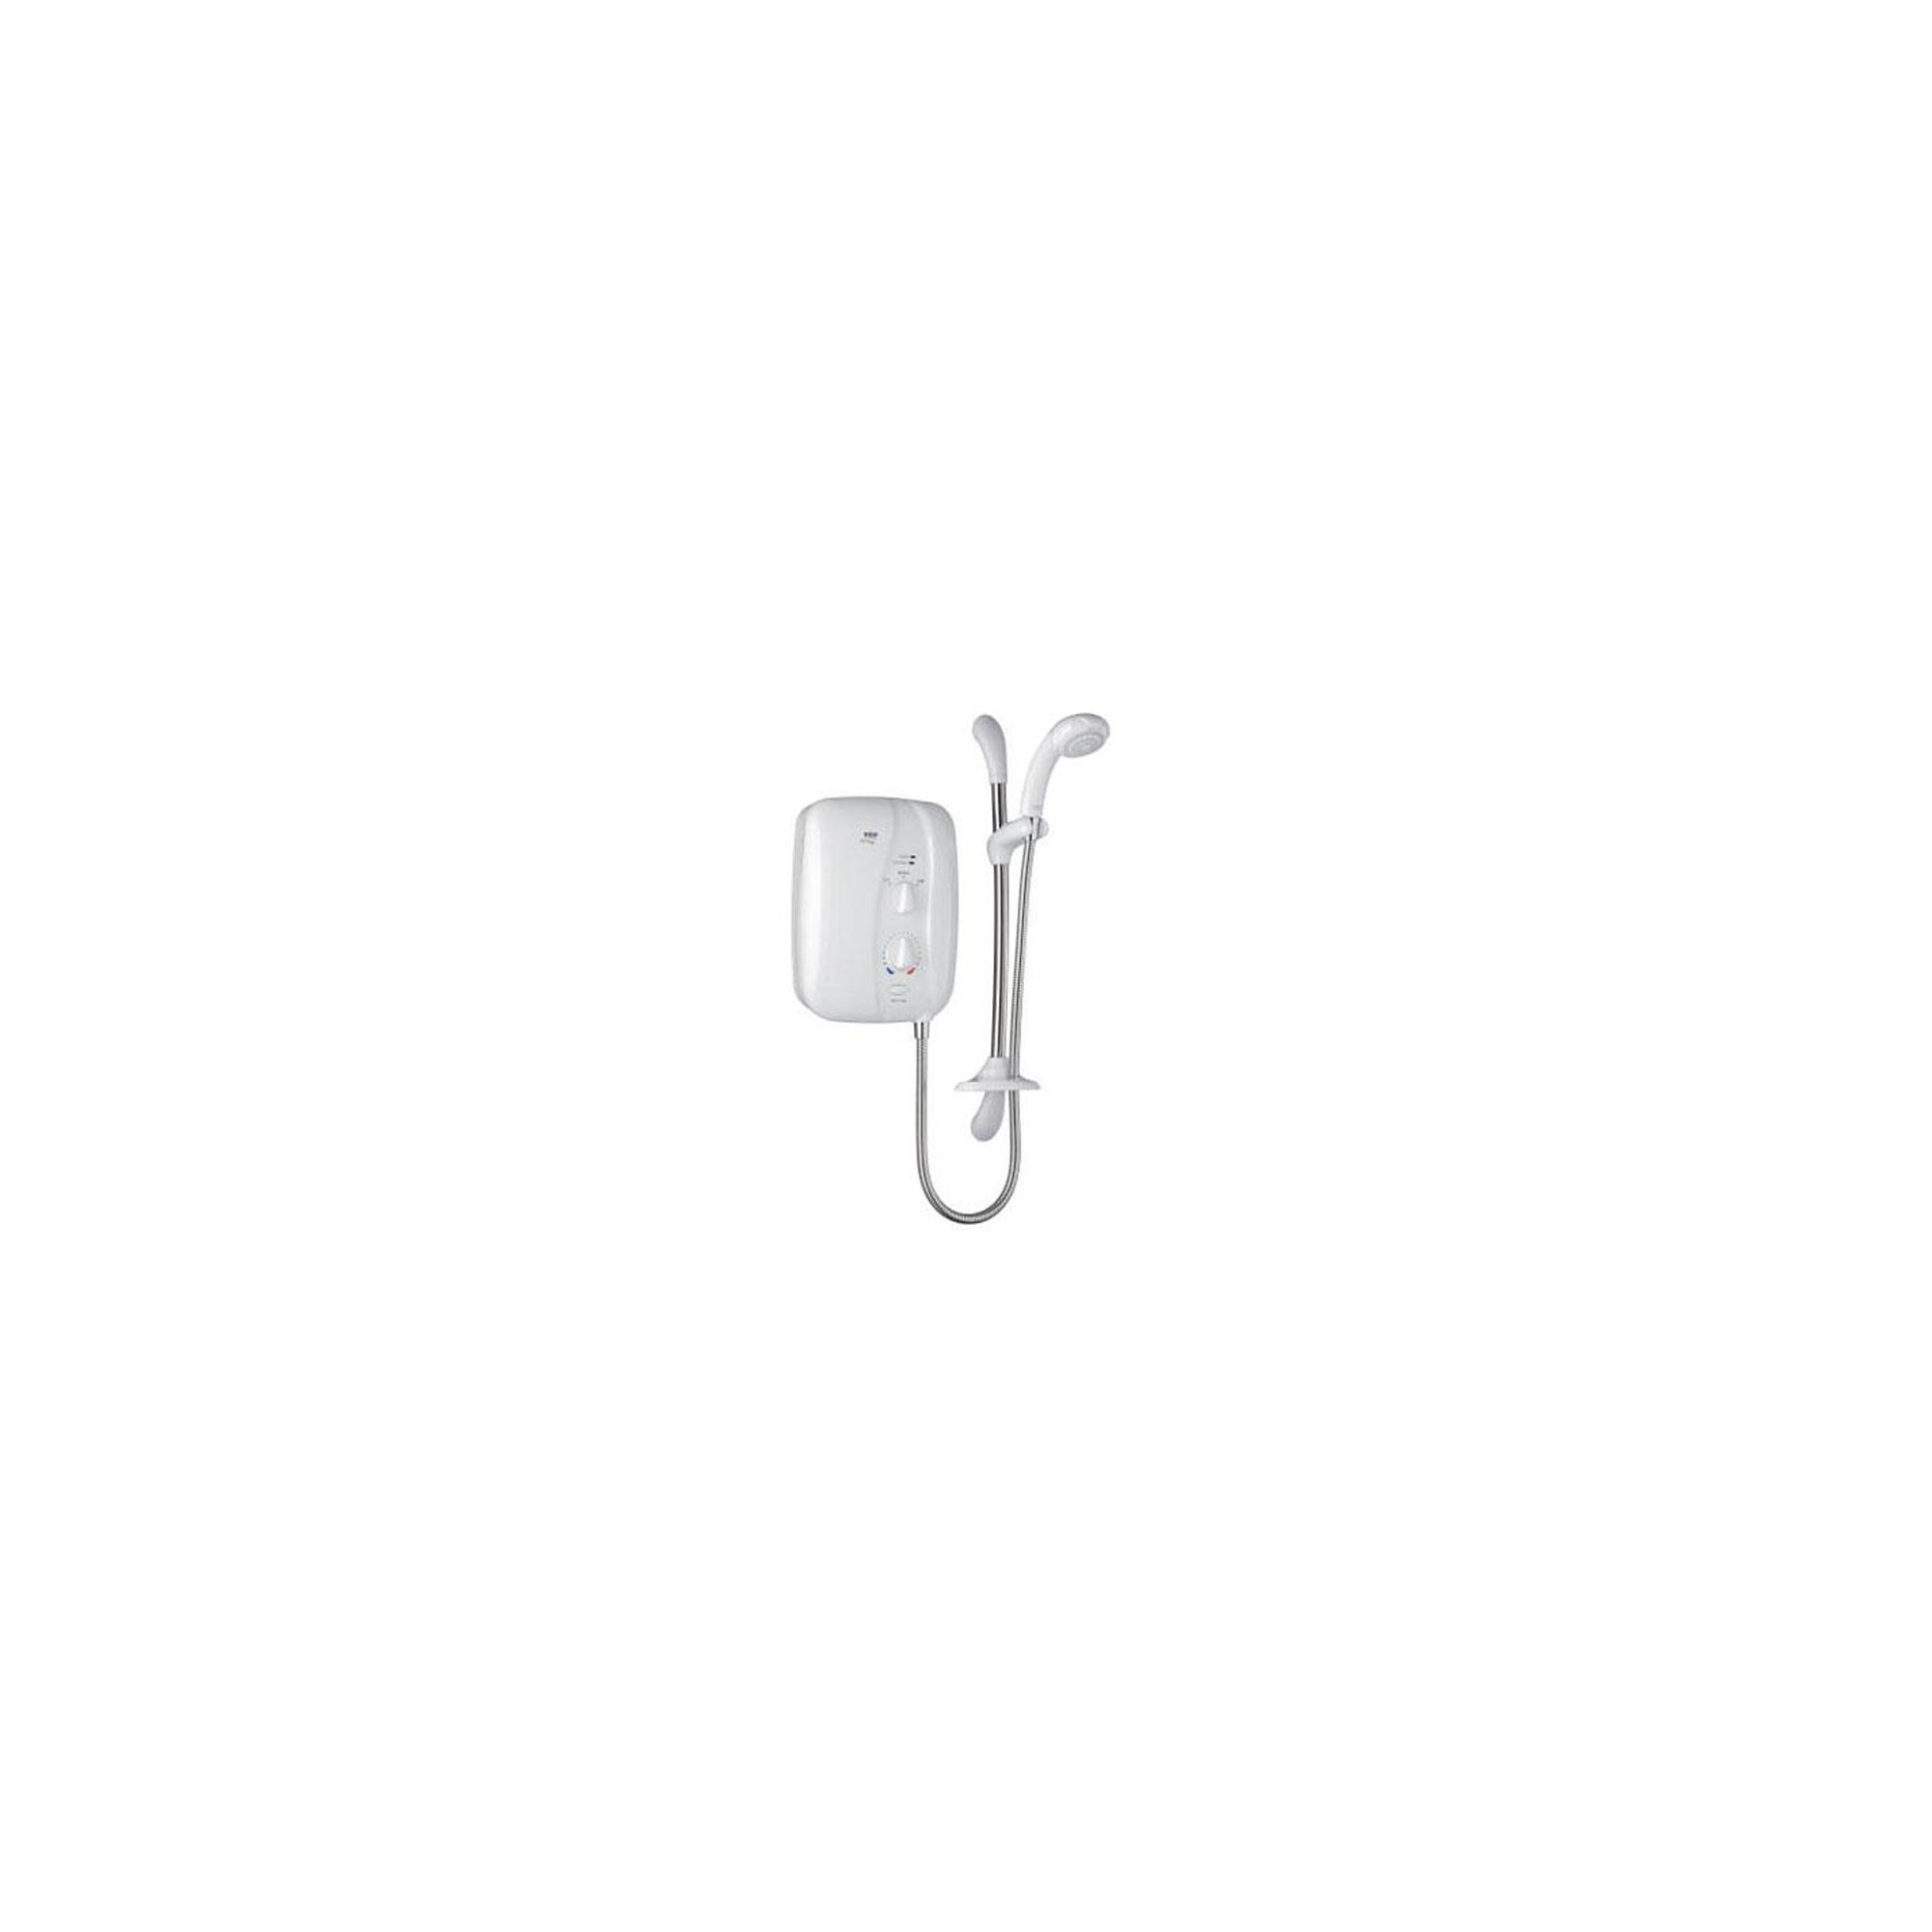 Mira Elite ST 10.8 kW Electric Shower with Sensi-Flo, White/Chrome at Tesco Direct